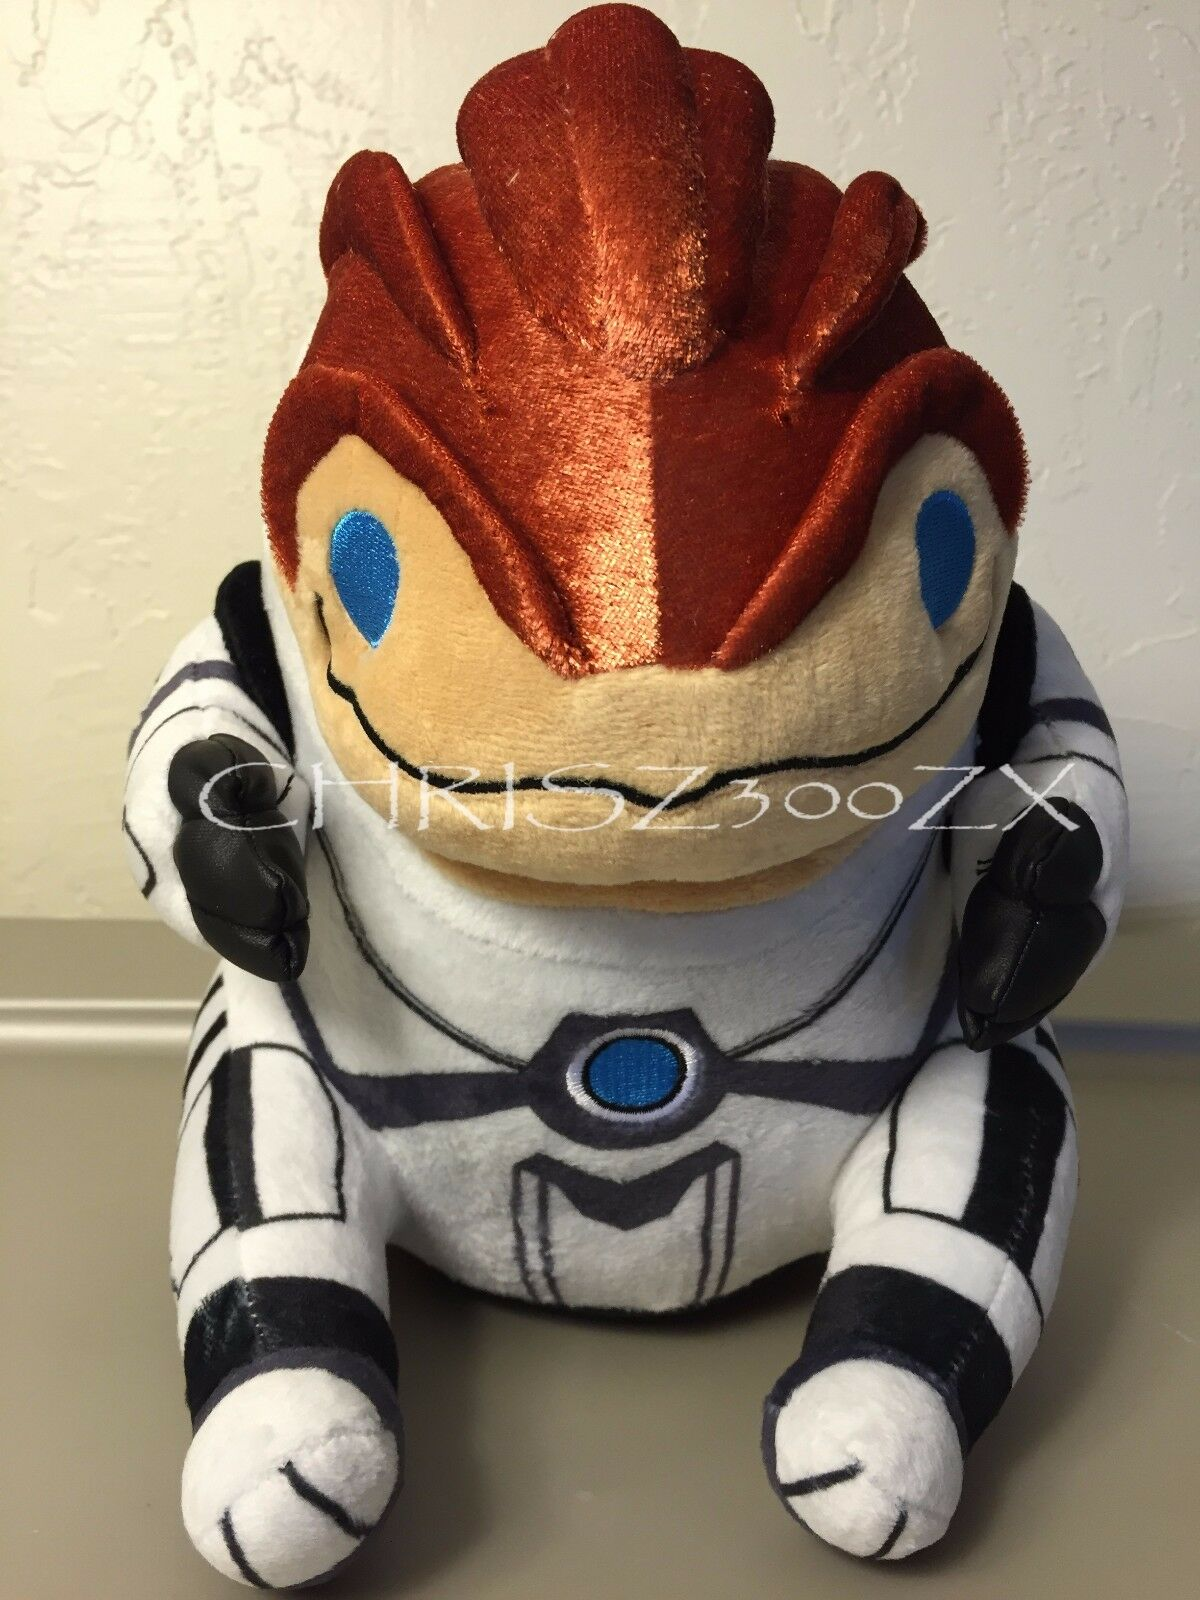 Mass Effect Grunt Krogan Plush Collector's Pet + Card 9